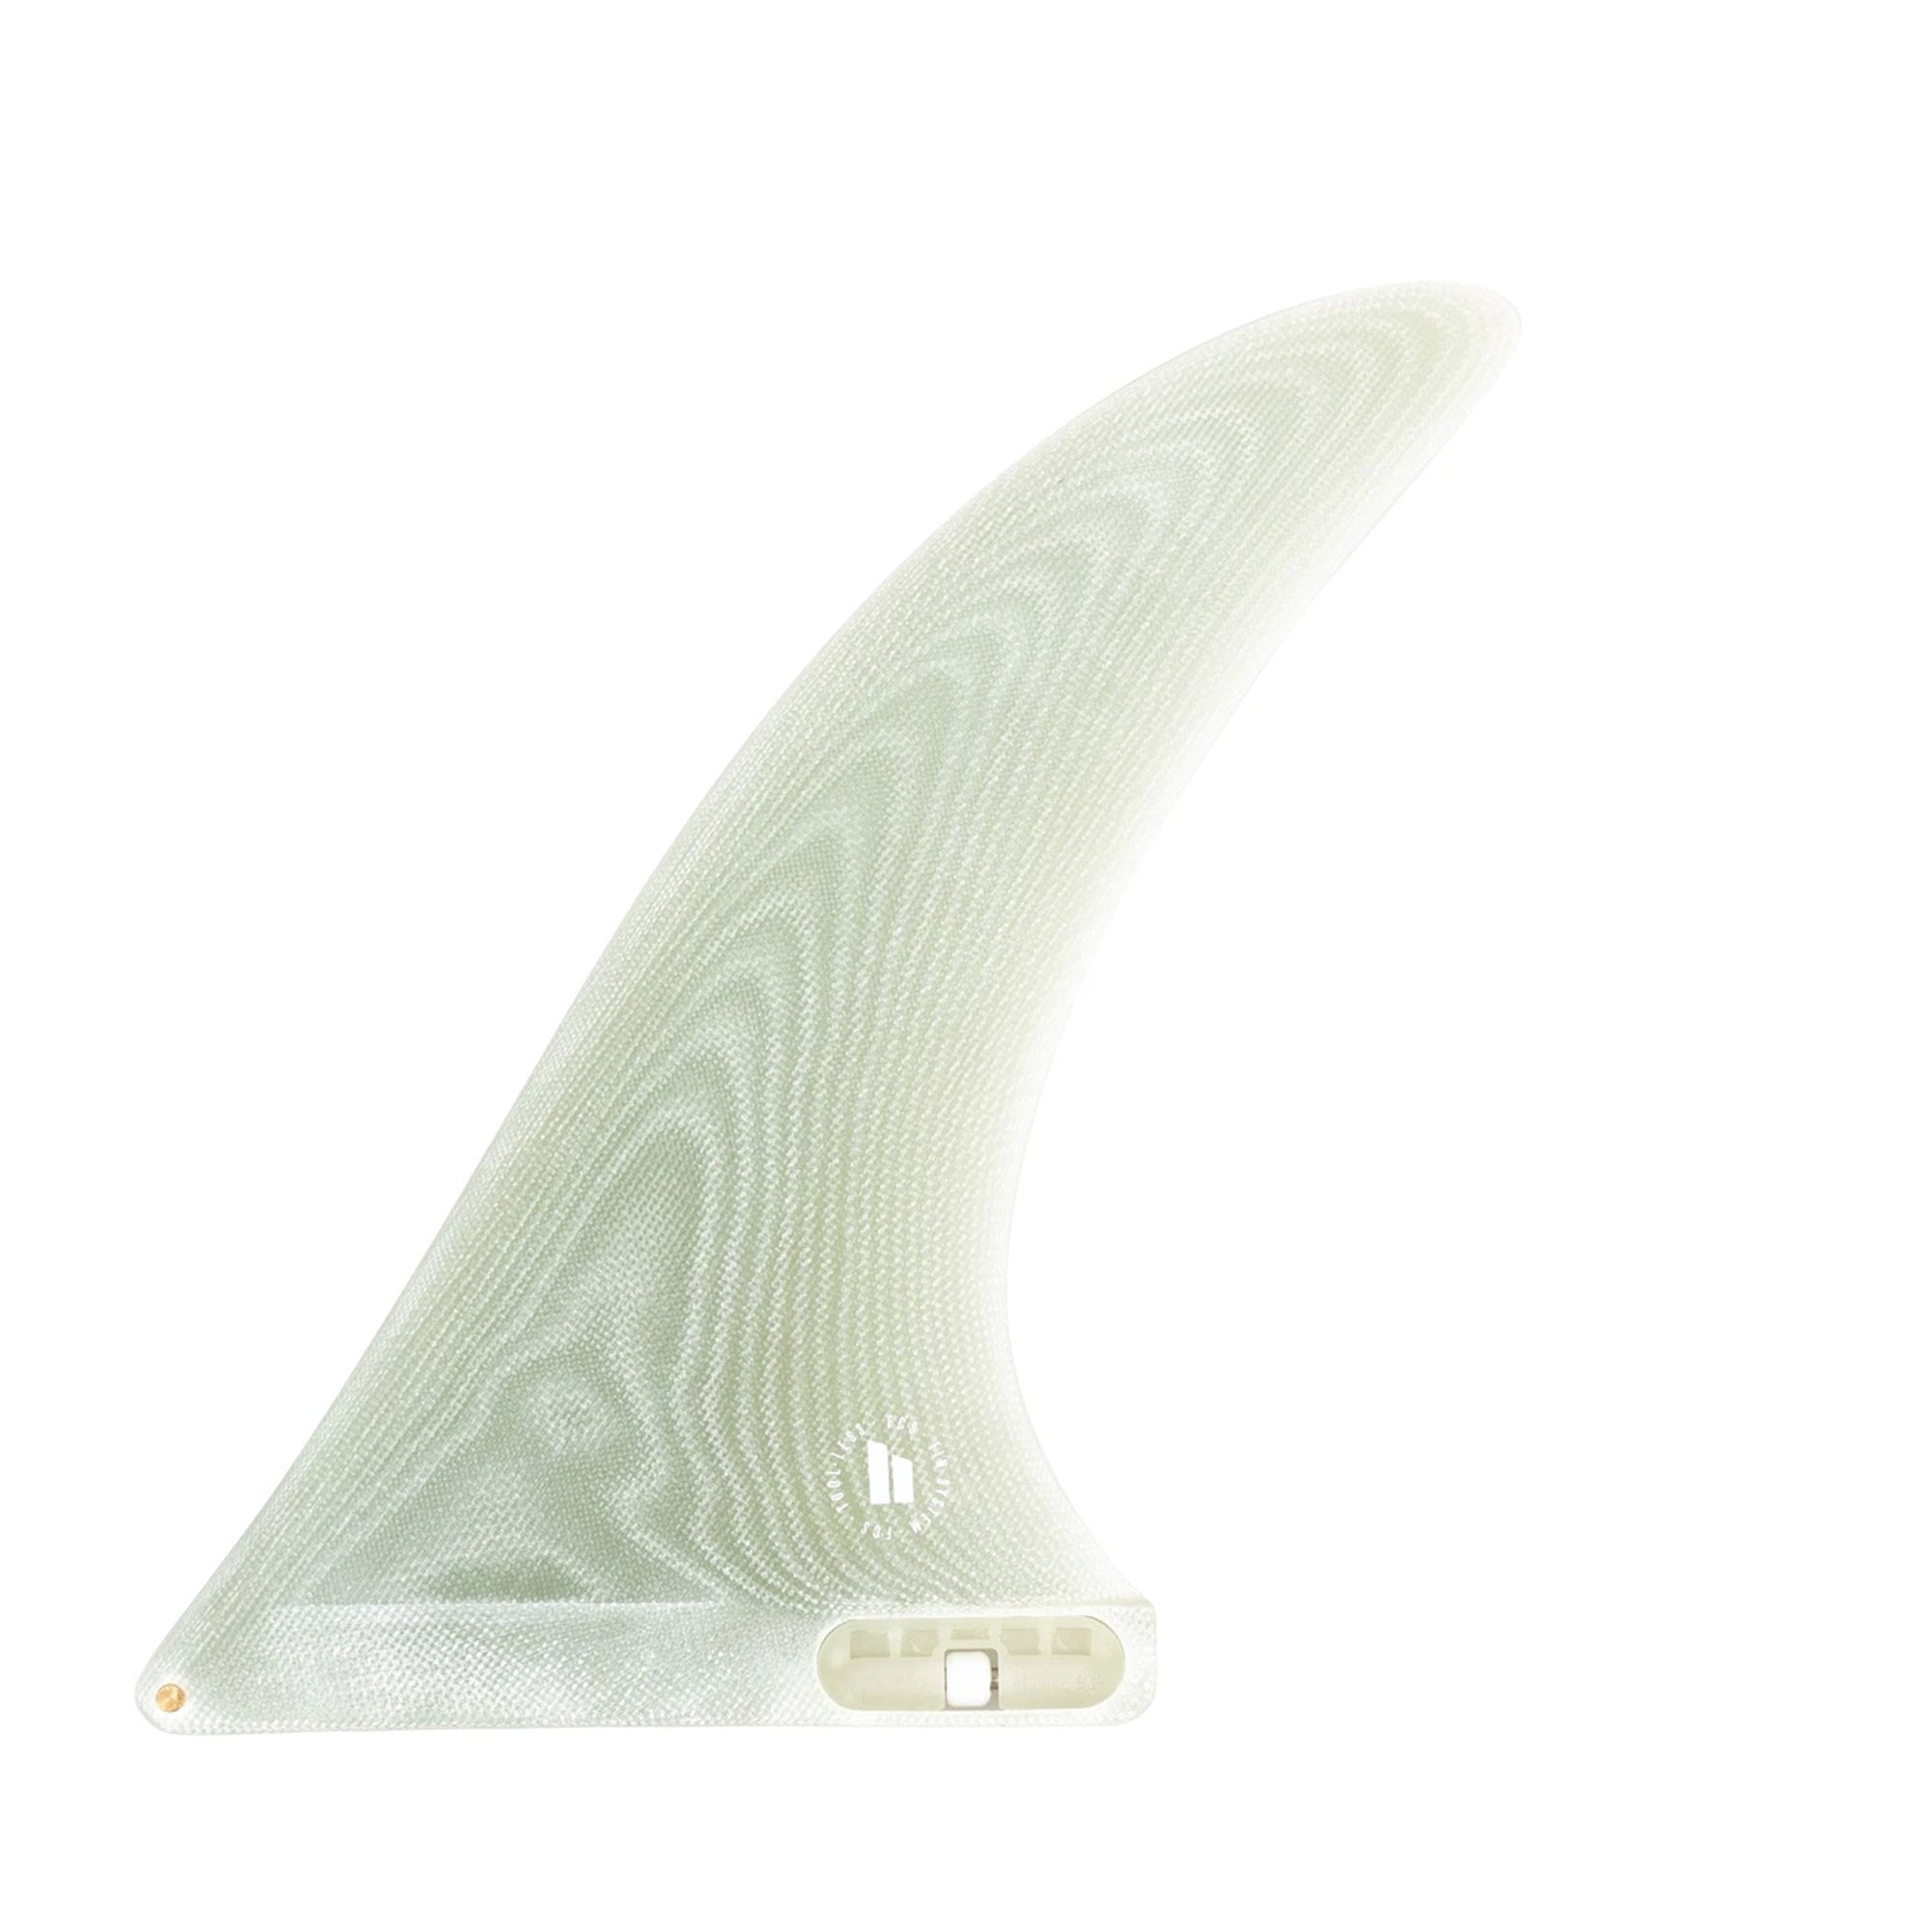 "FCS II Thomas Performance Glass 9.75"" Longboard Fin - Volan"